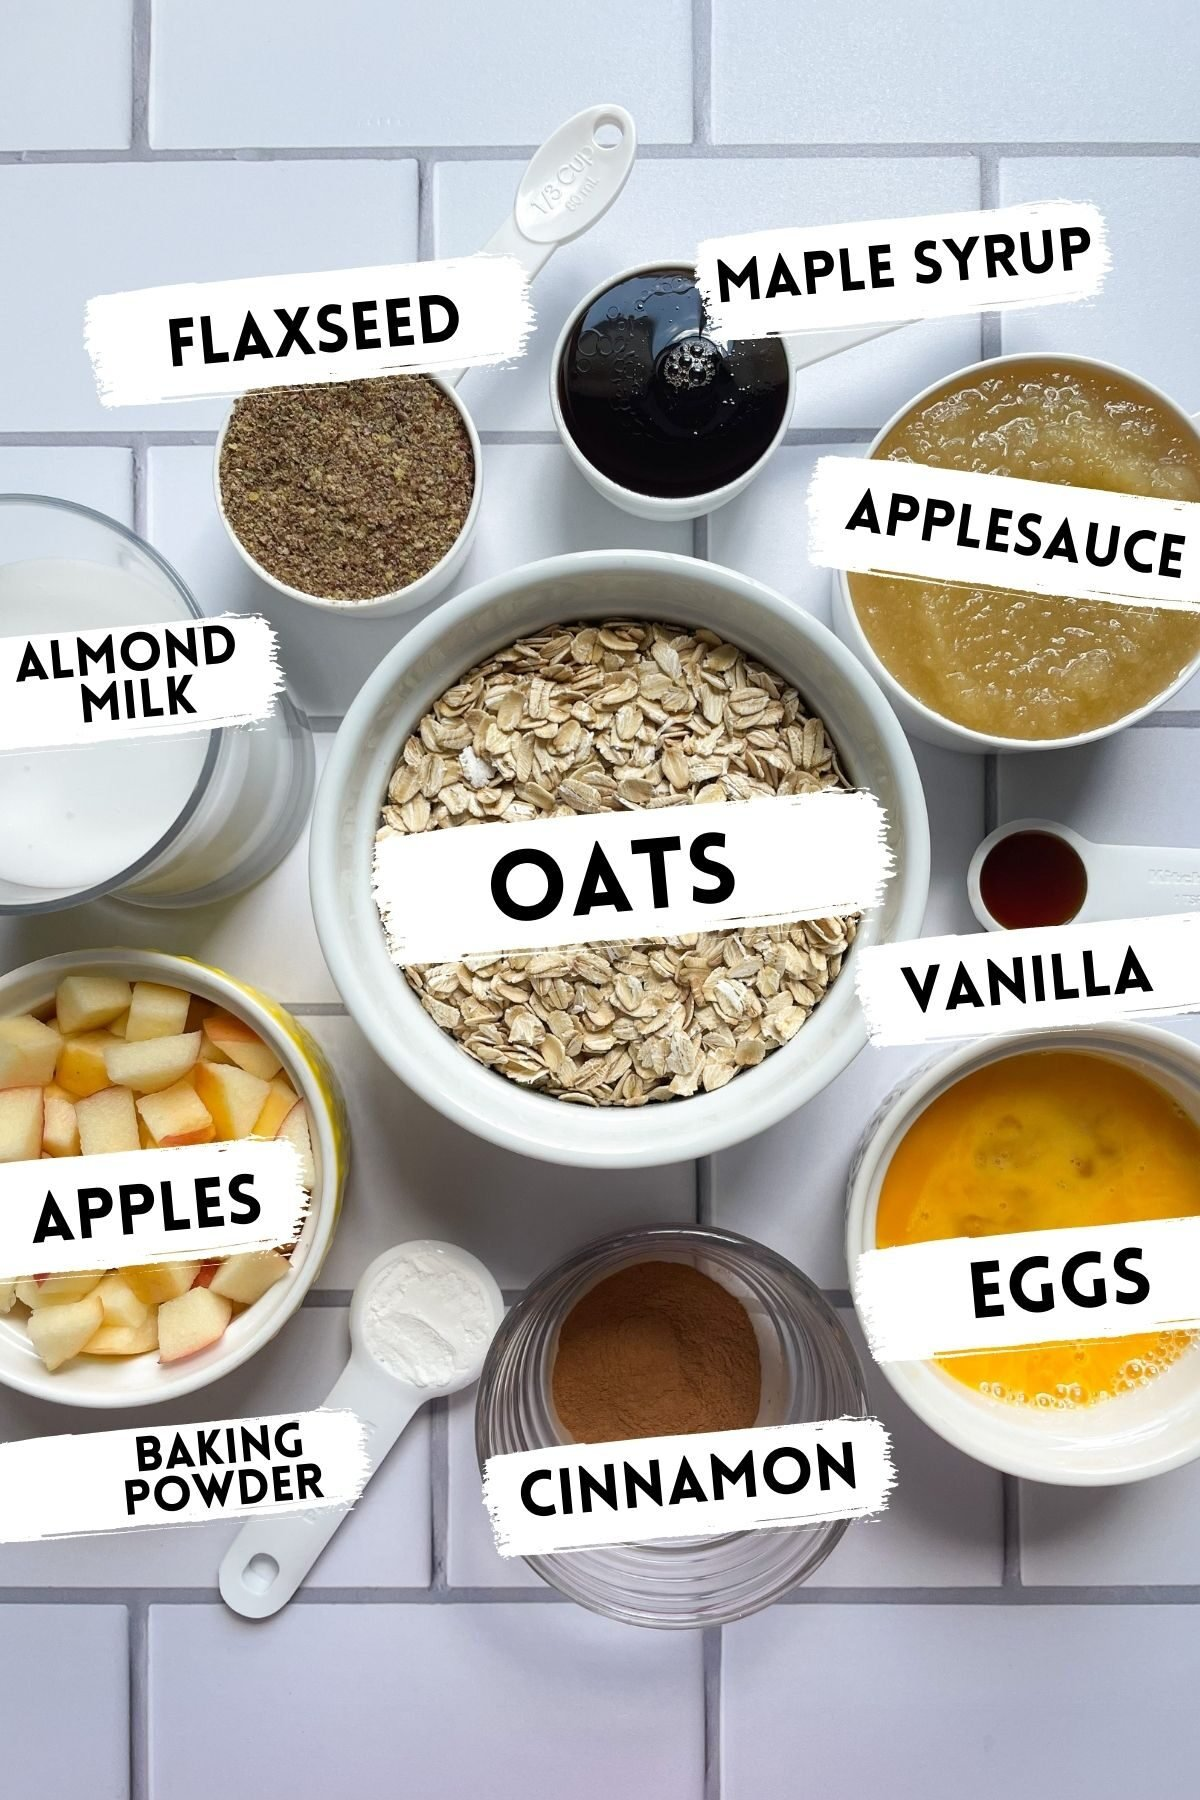 ingredients for baked oatmeal bars with applesauce